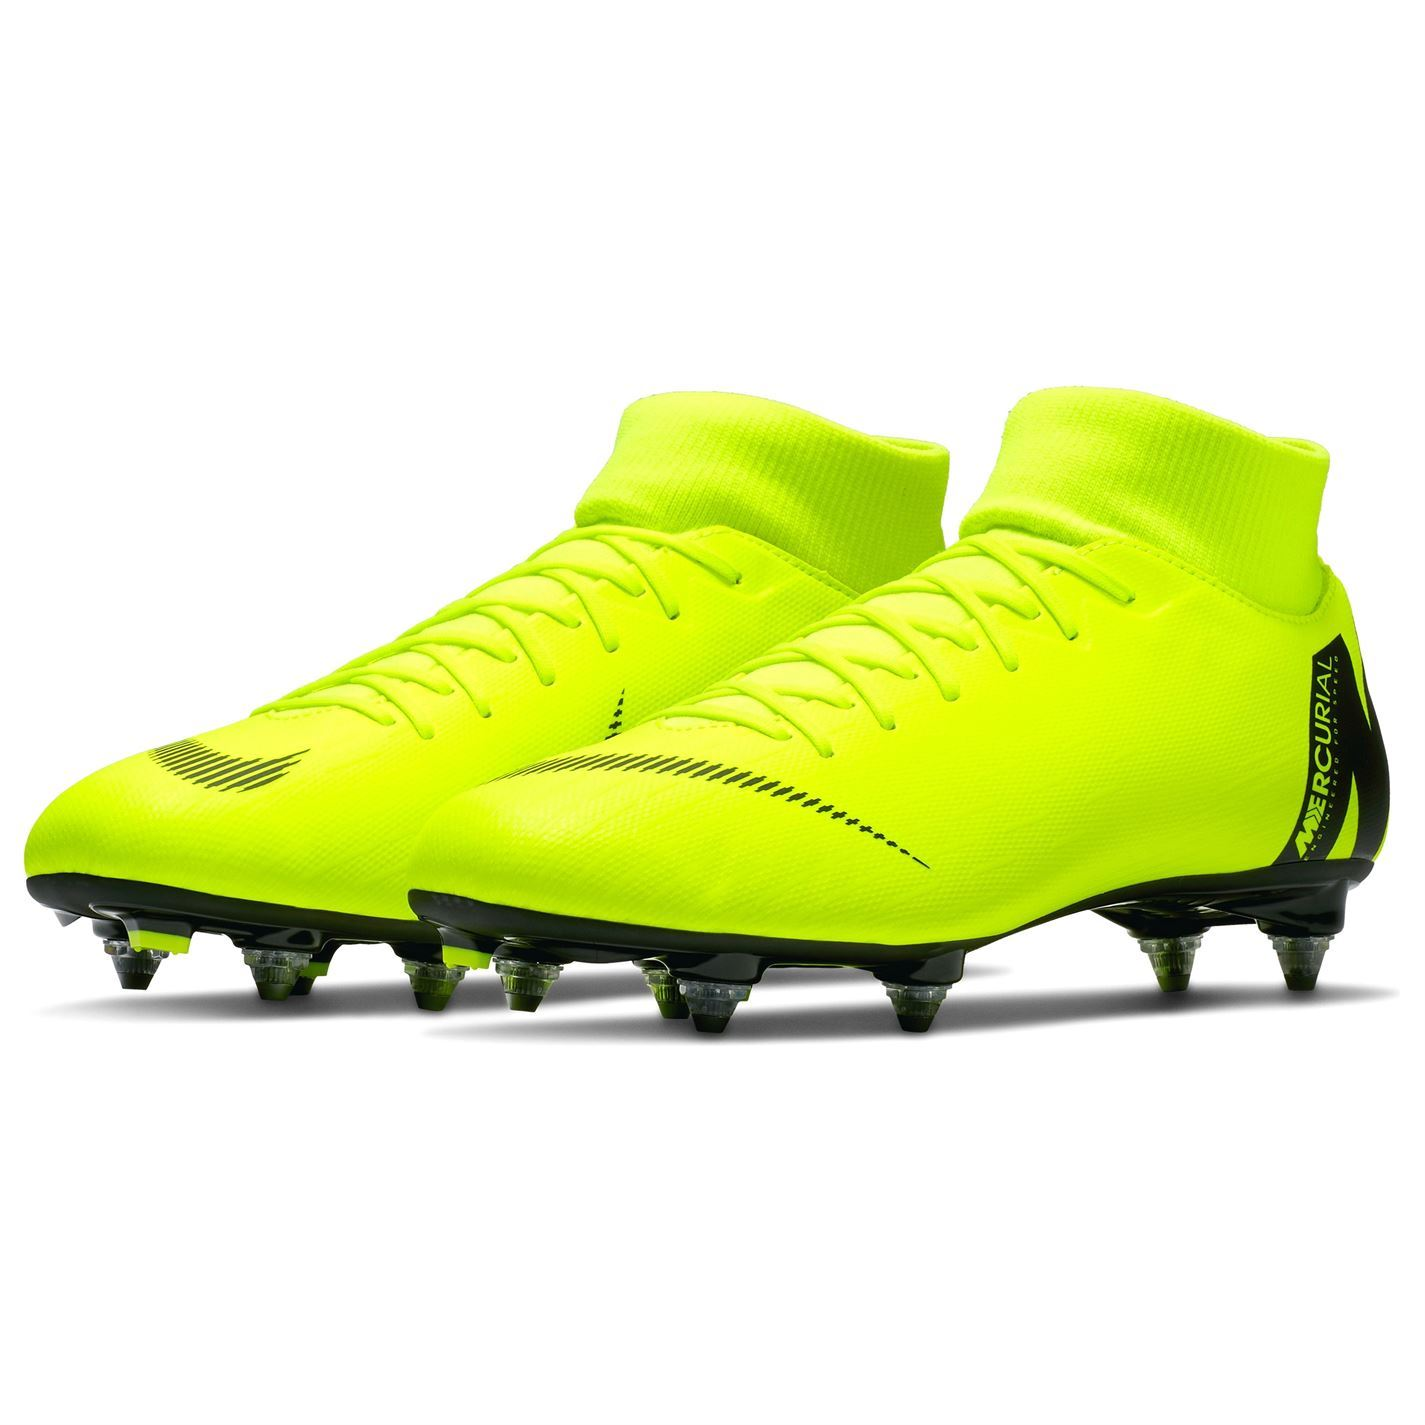 0466d0632d6d Nike Mercurial Superfly Academy DF Soft Ground Football Boots Mens ...